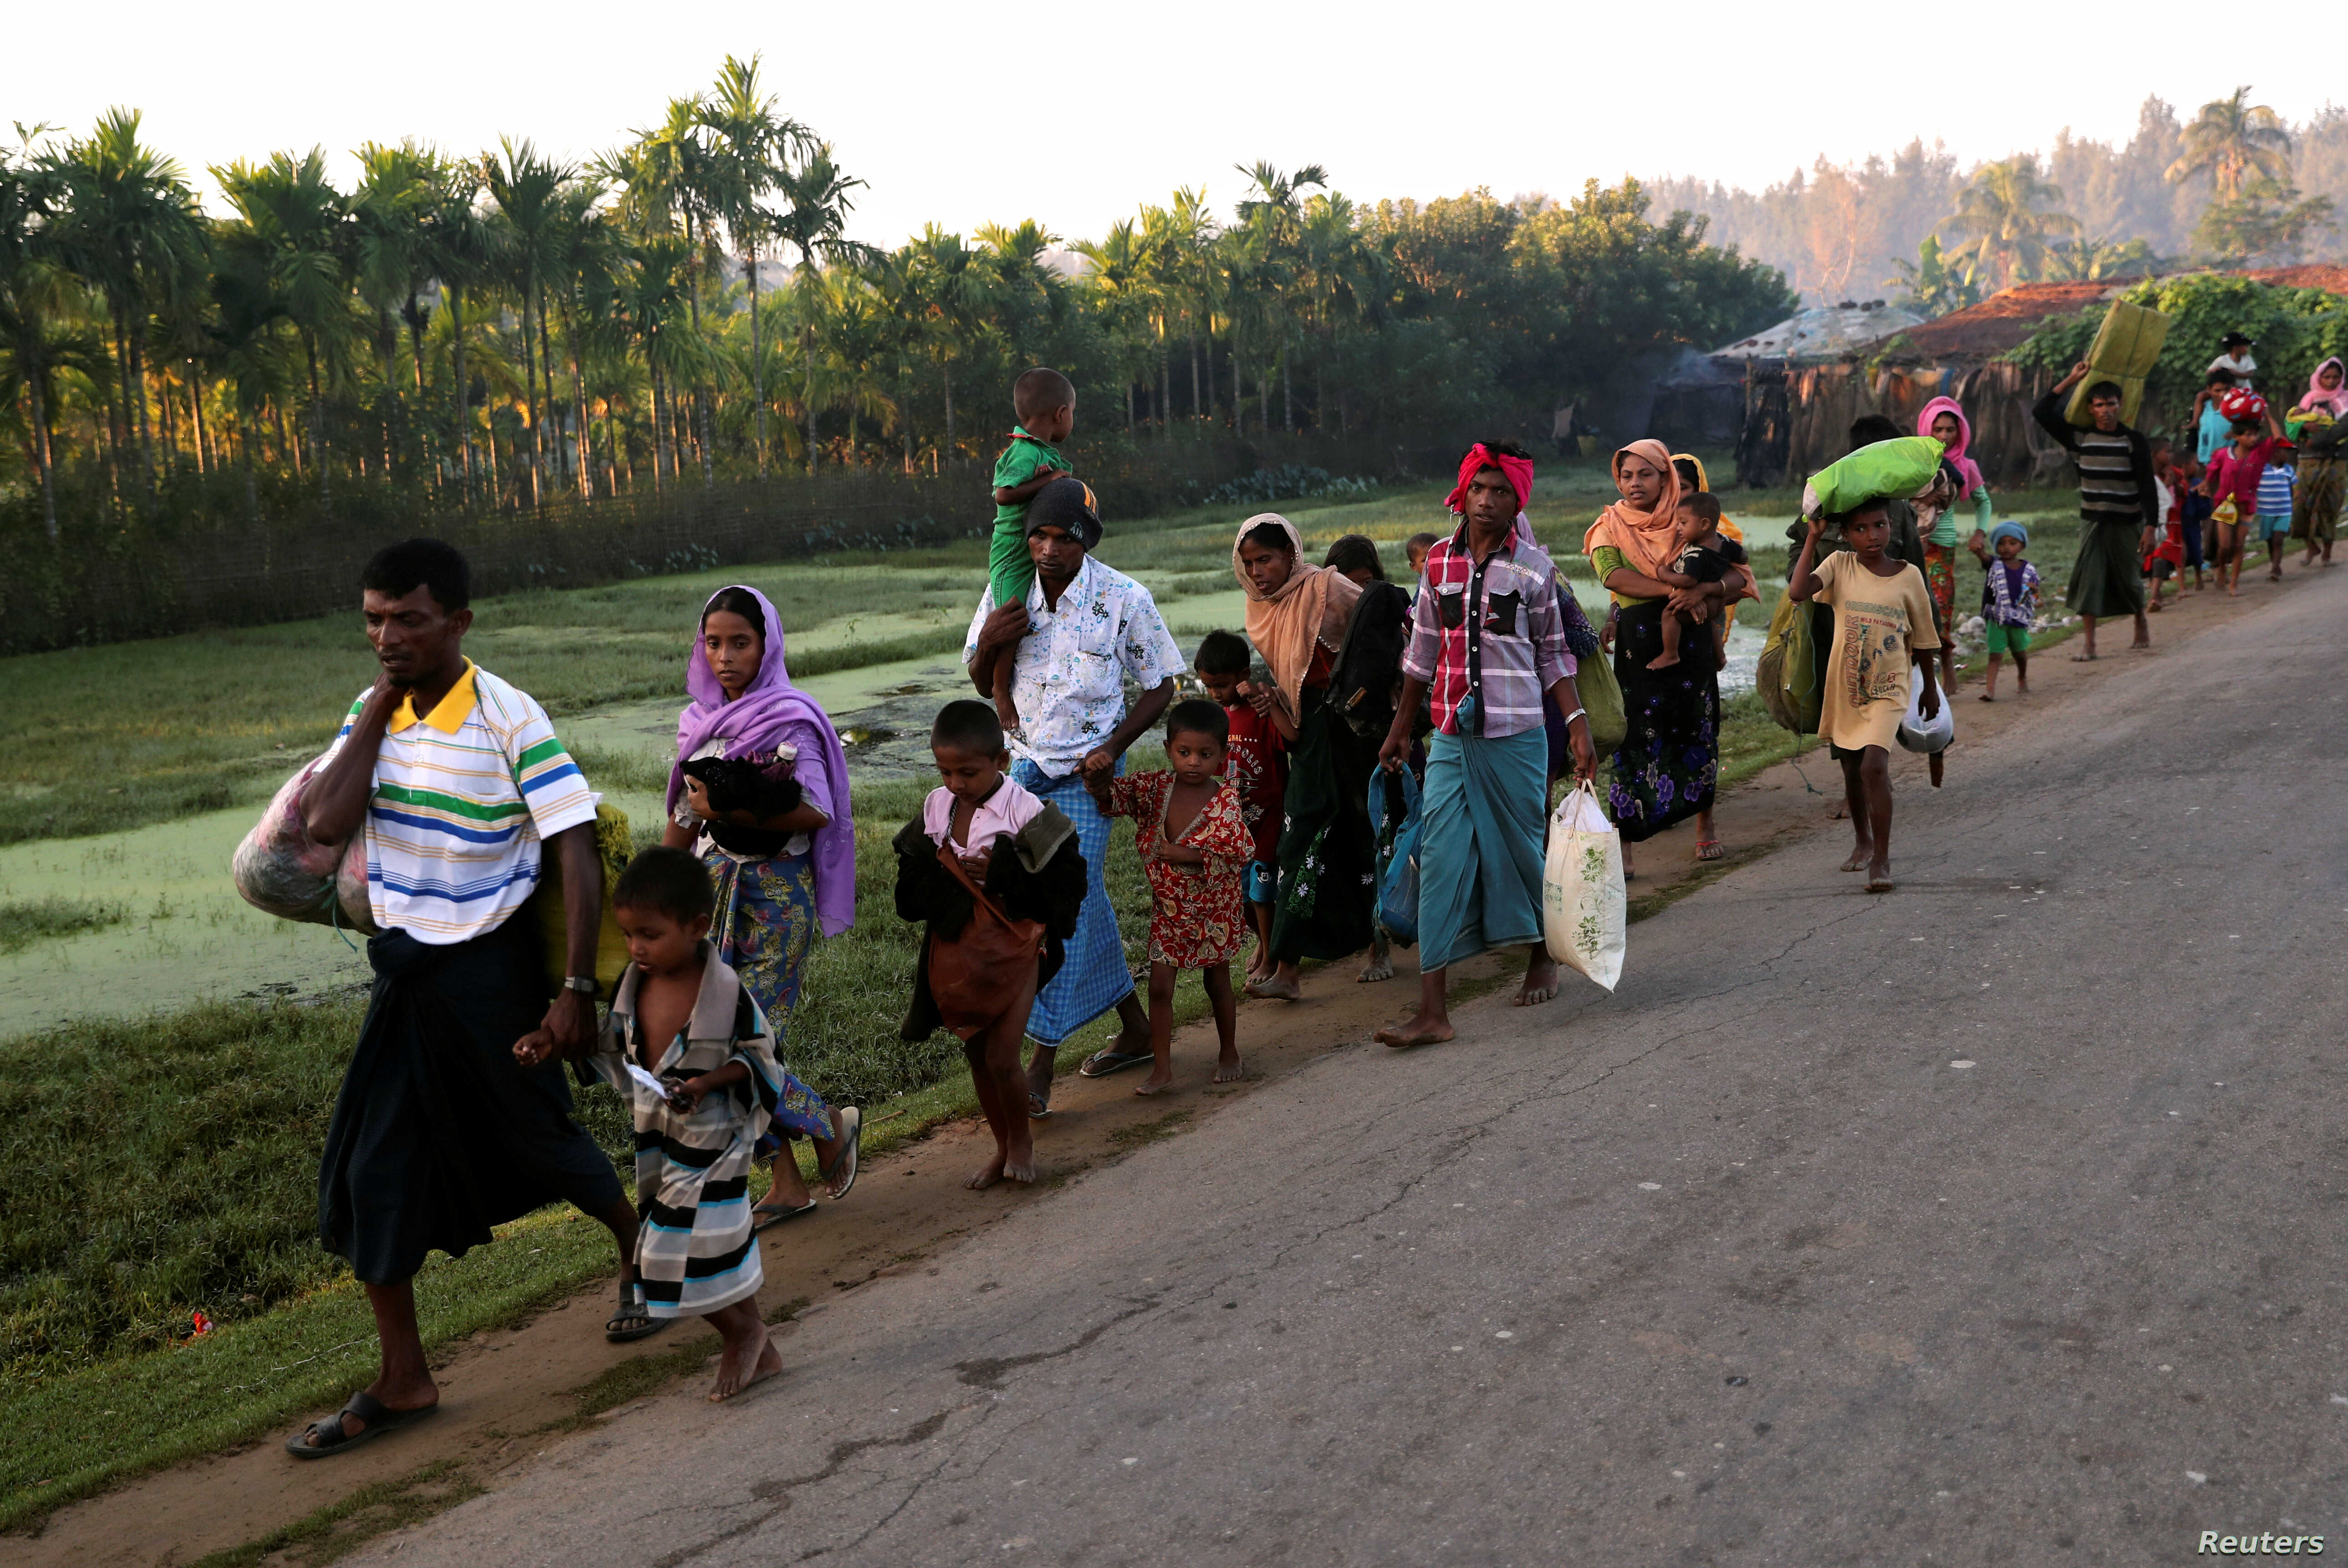 A group of Rohingya refugees, who fled last night from Myanmar by boat, walks toward a makeshift camp in Cox's Bazar, Bangladesh, Nov. 9, 2017.